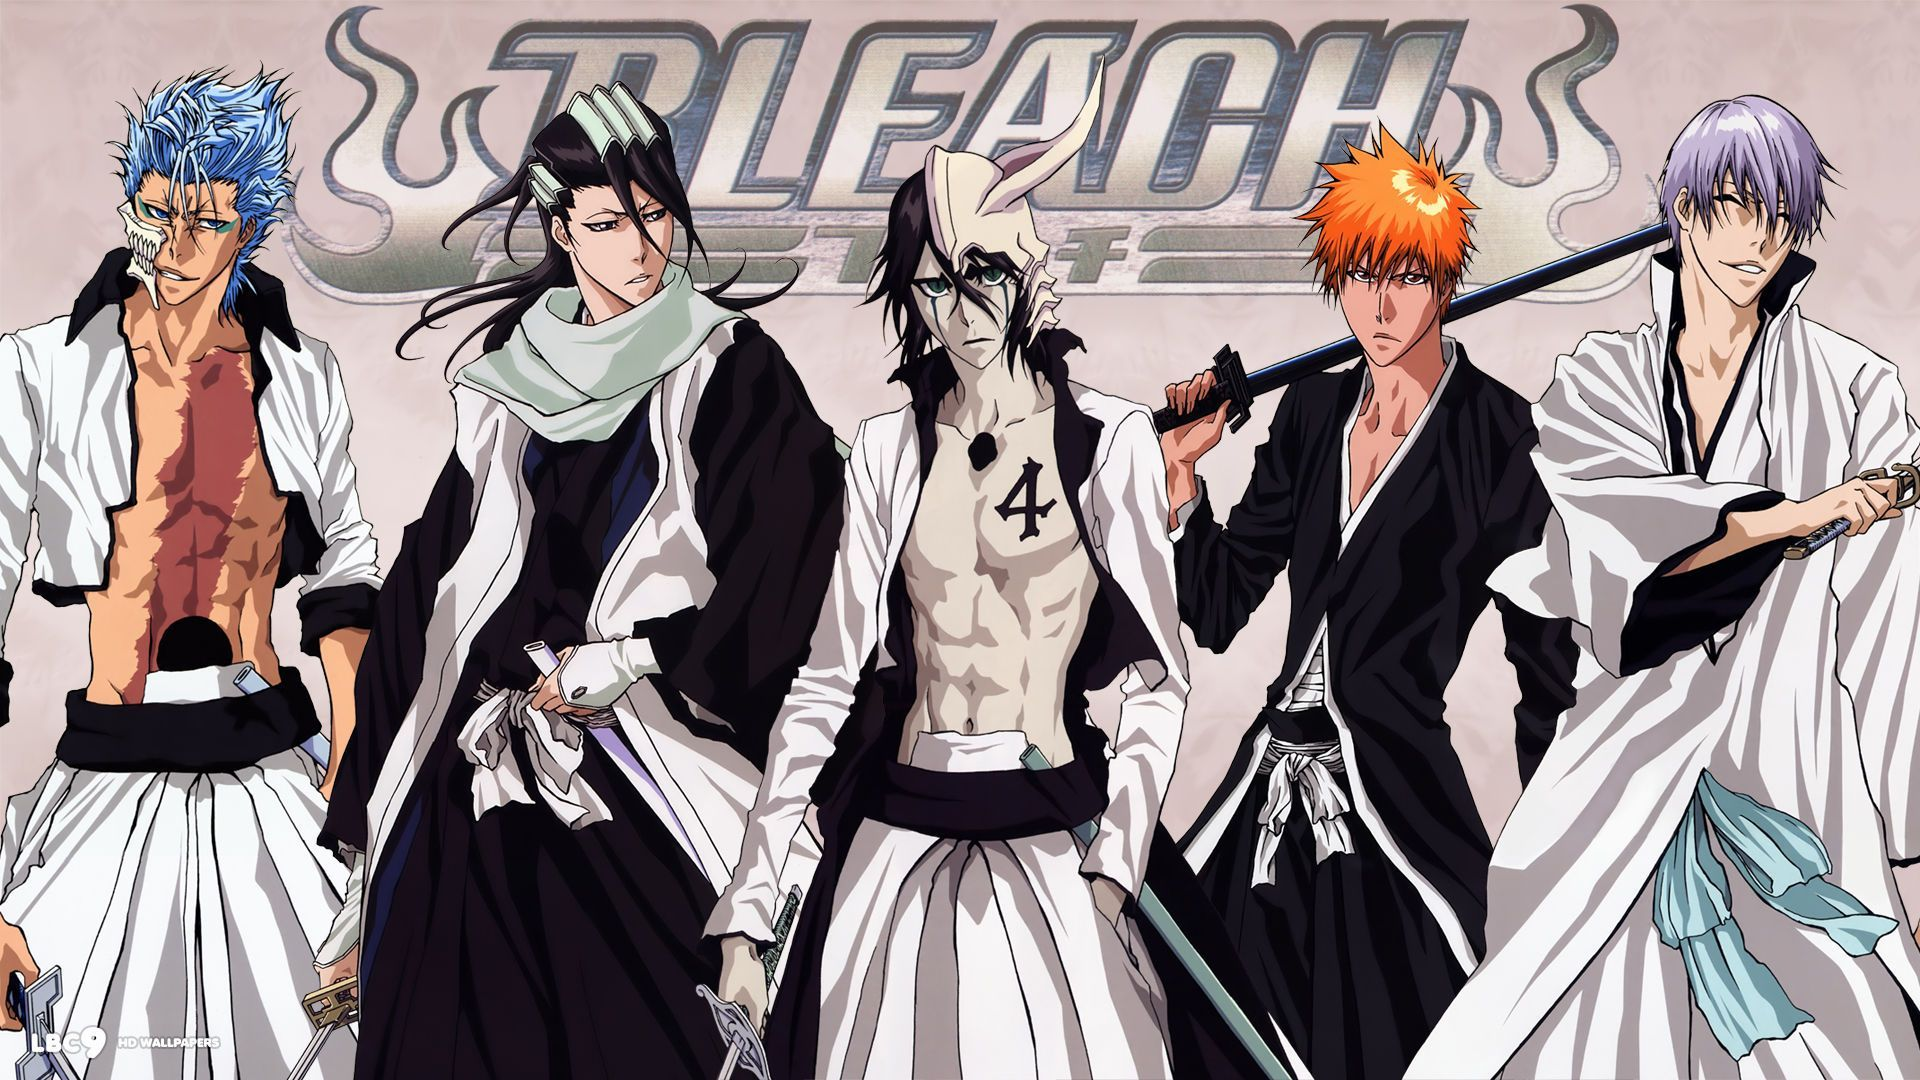 Bleach Hd Wallpapers Tons Of Awesome Bleach Wallpapers 1920x1080 To Download For Free We Have 73 Amazing Background Pictures Carefully Picked By Our Community